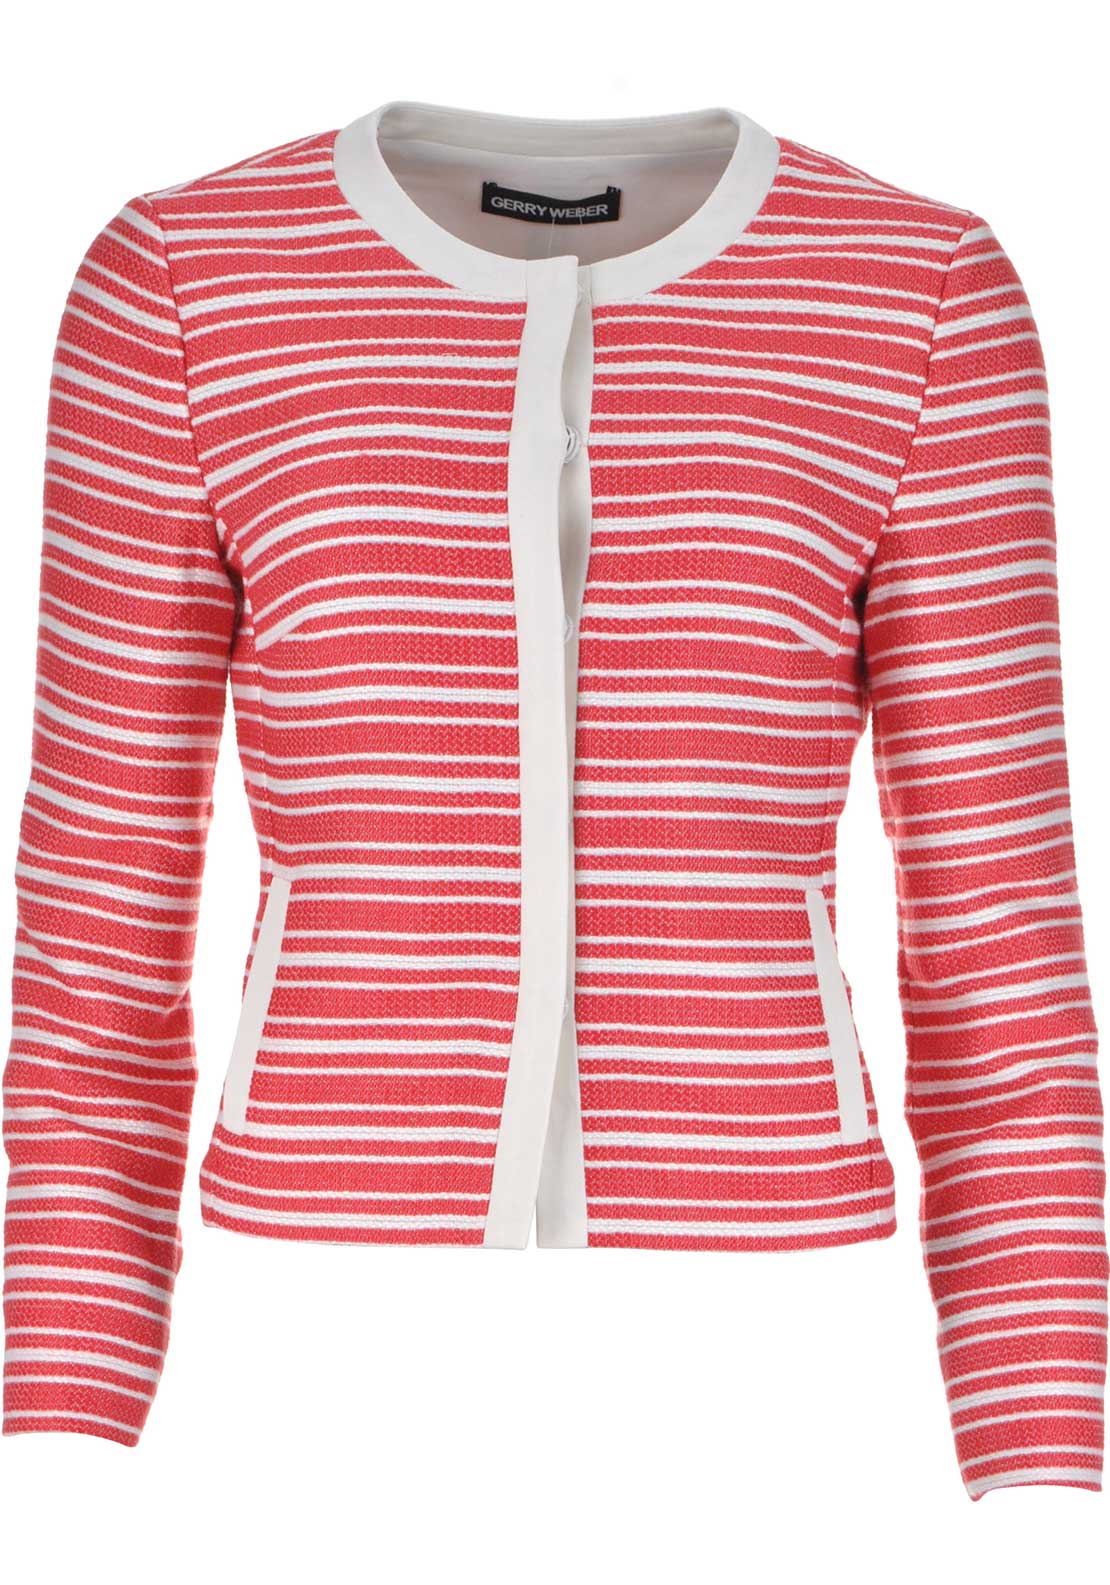 Gerry Weber Striped Cropped Jacket, Red and White